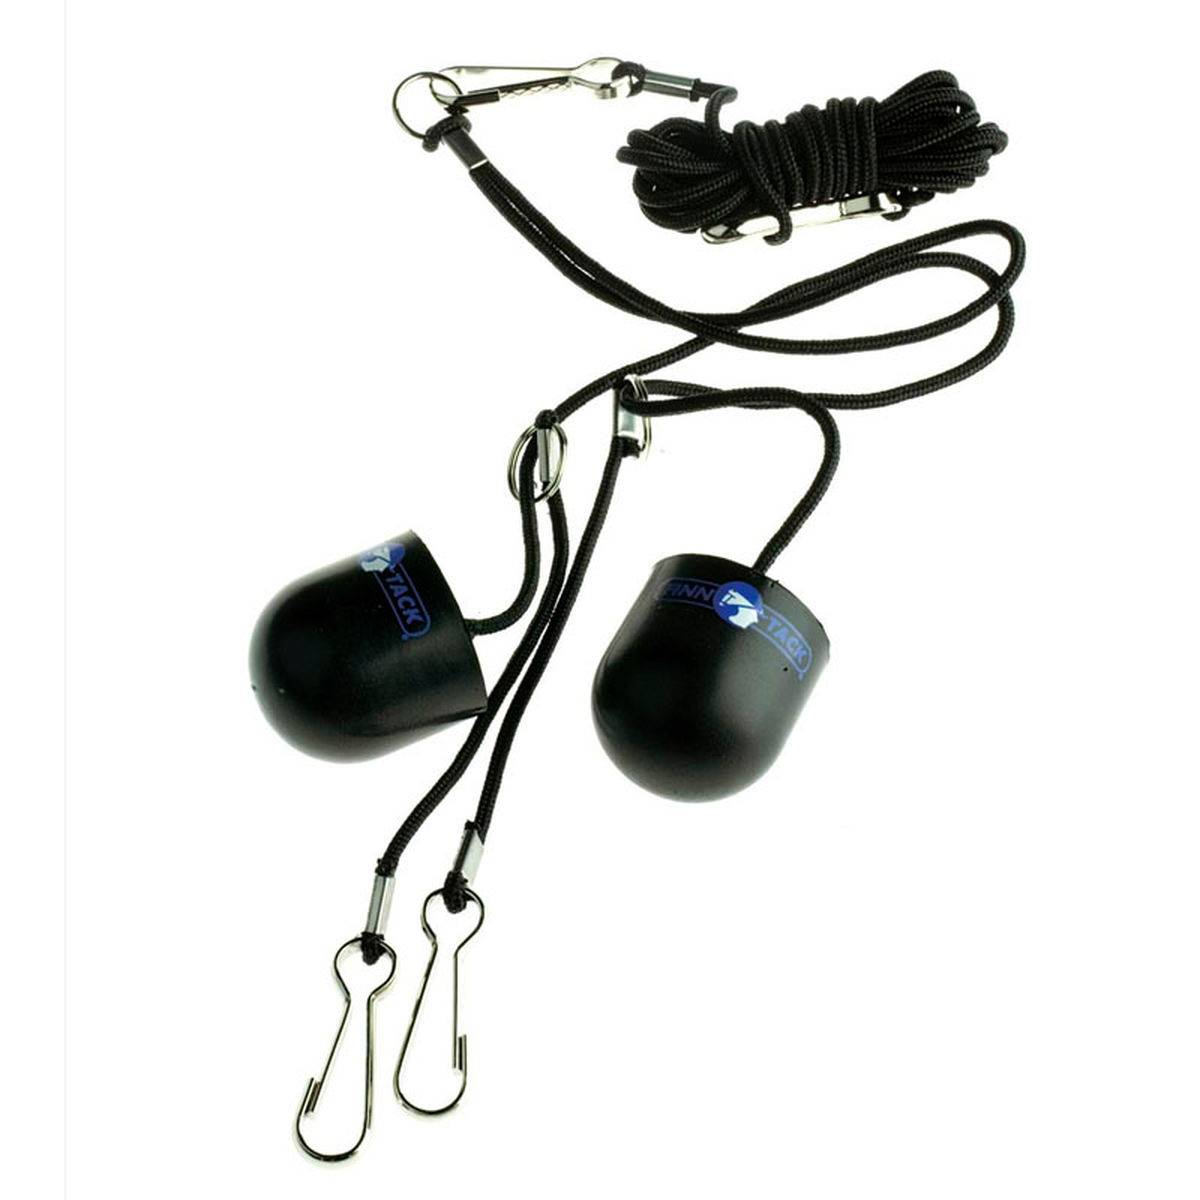 Finn Tack Black Earplugs With Cord